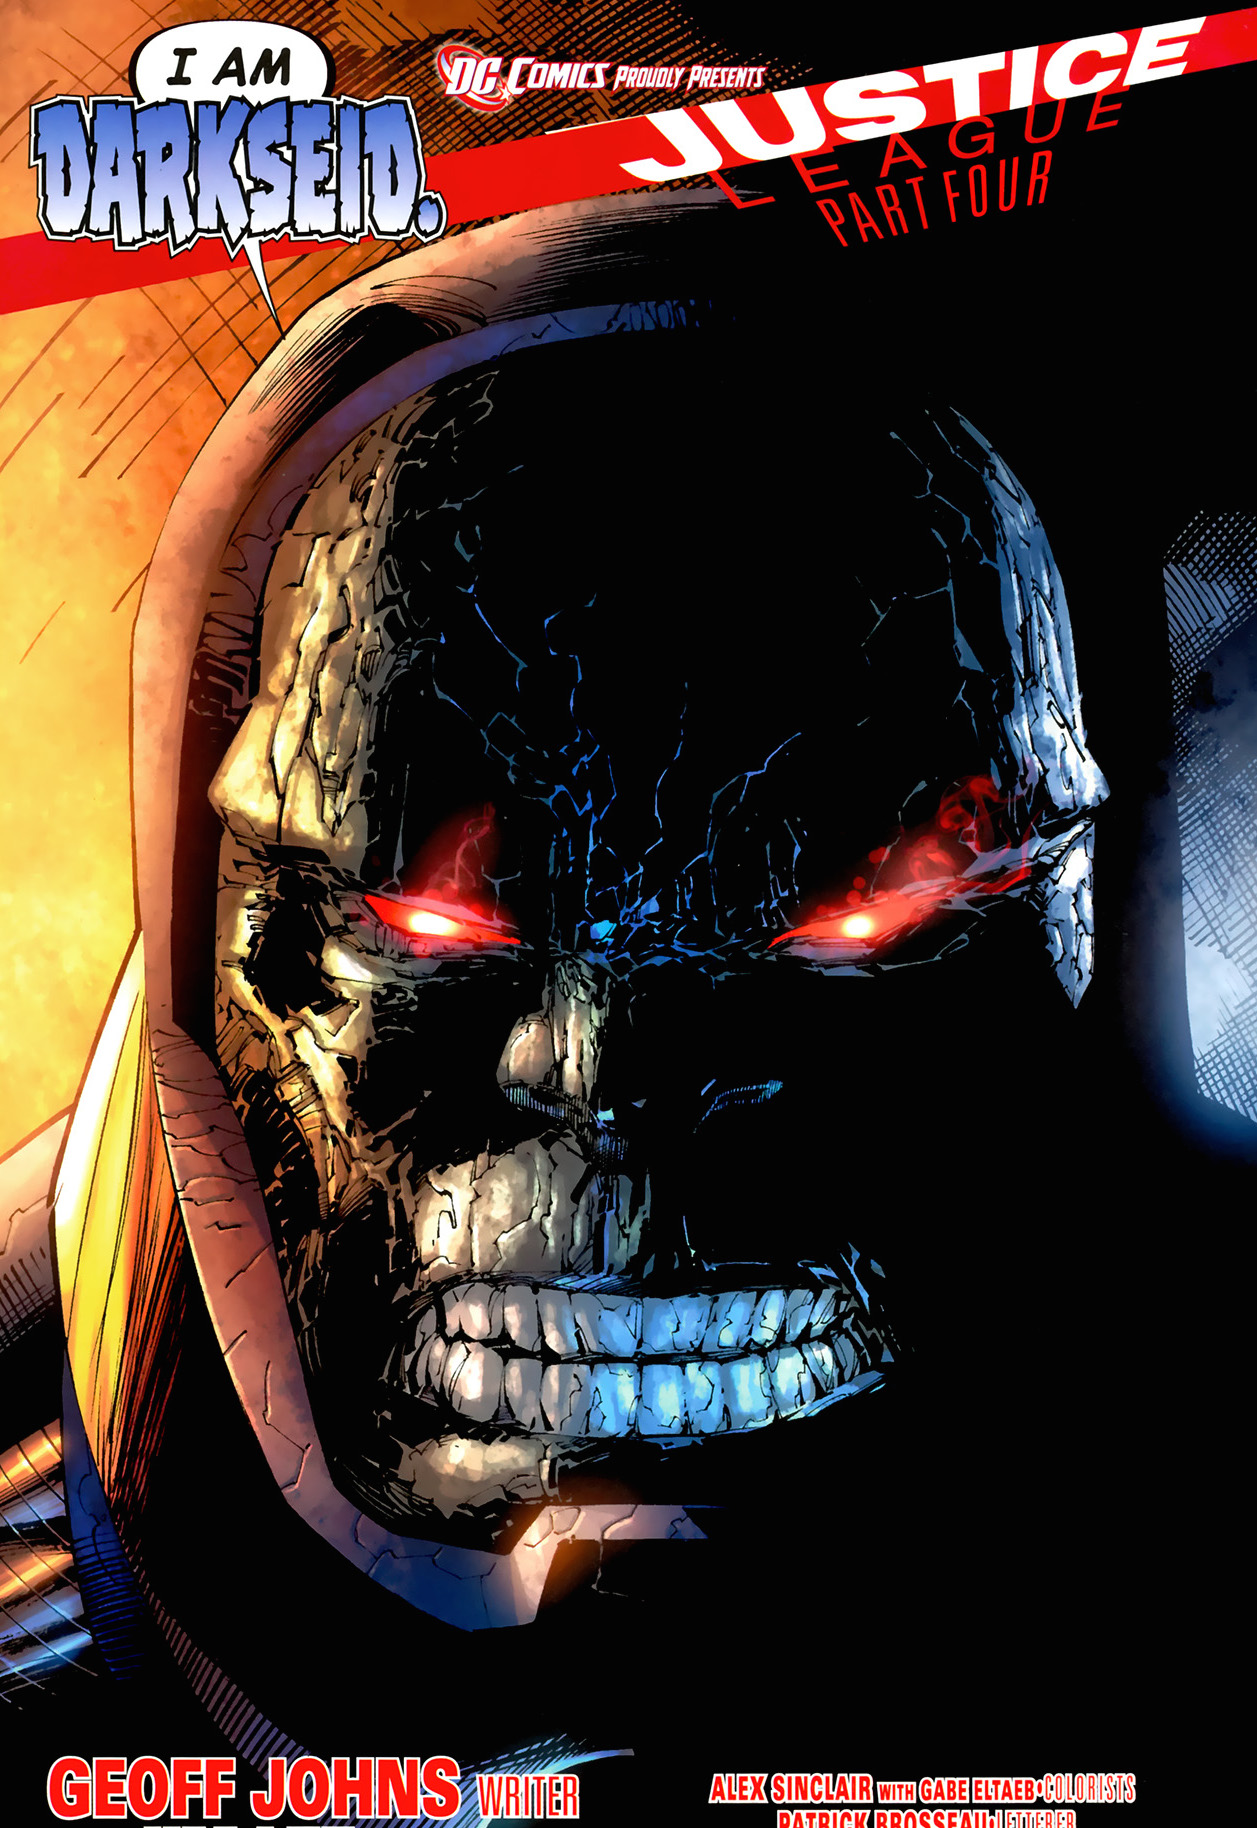 I AM DARKSEID